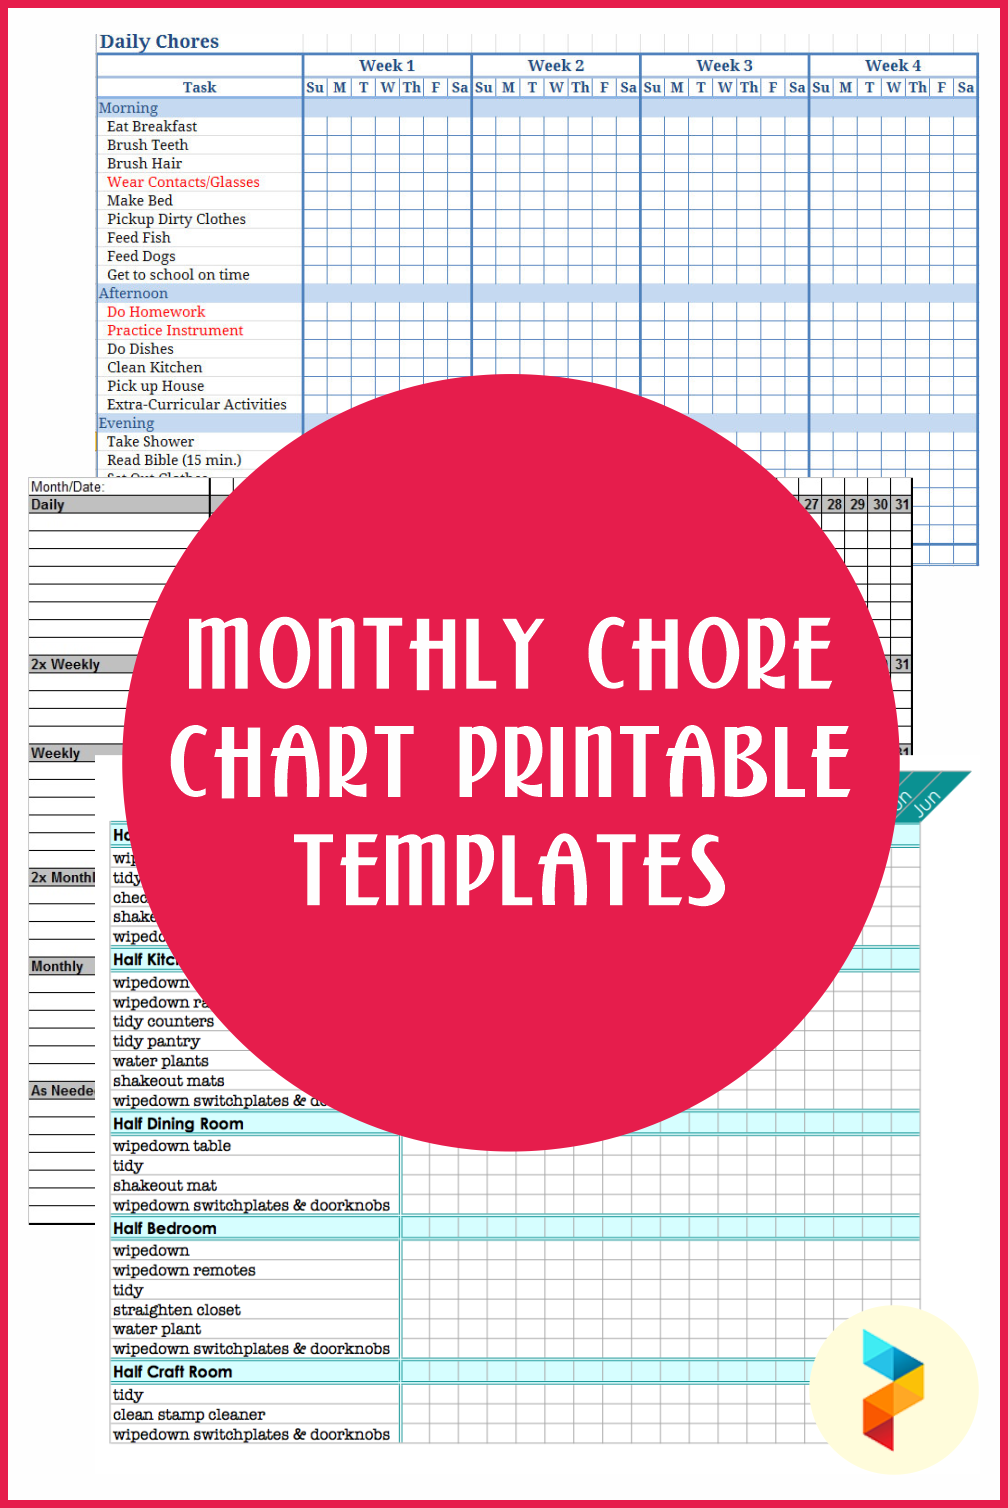 Monthly Chore Chart Printable Templates